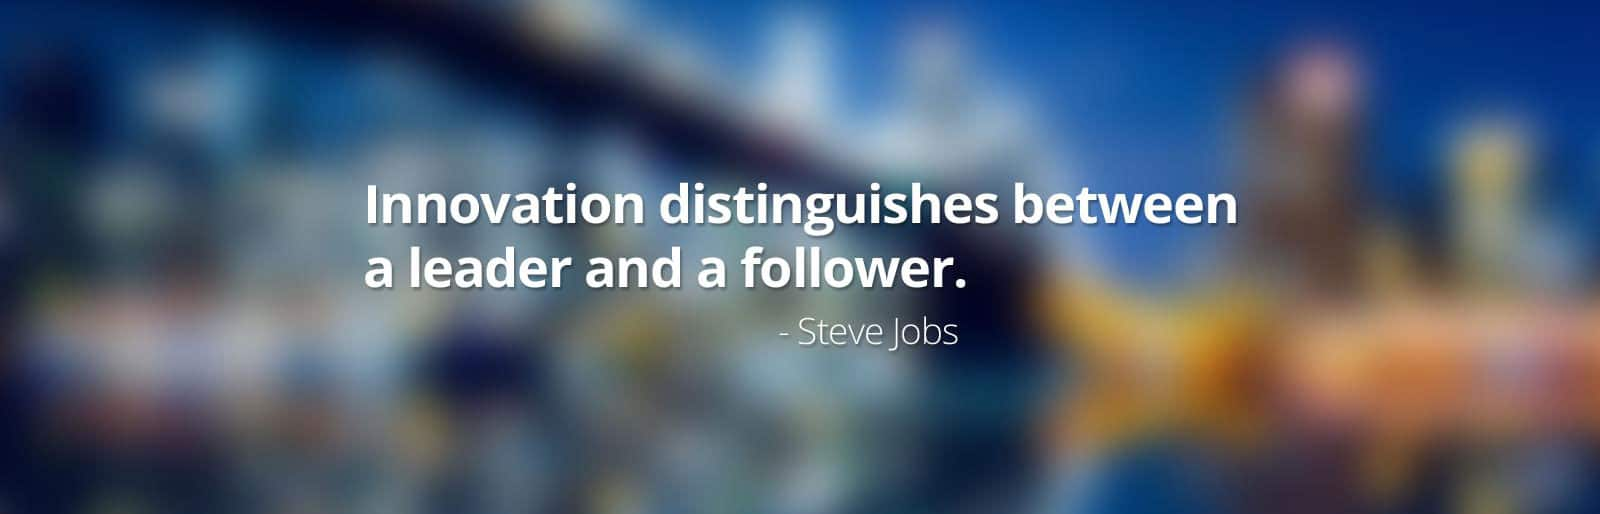 Innovation distinguishes between a leader and a follower -Steve Jobss